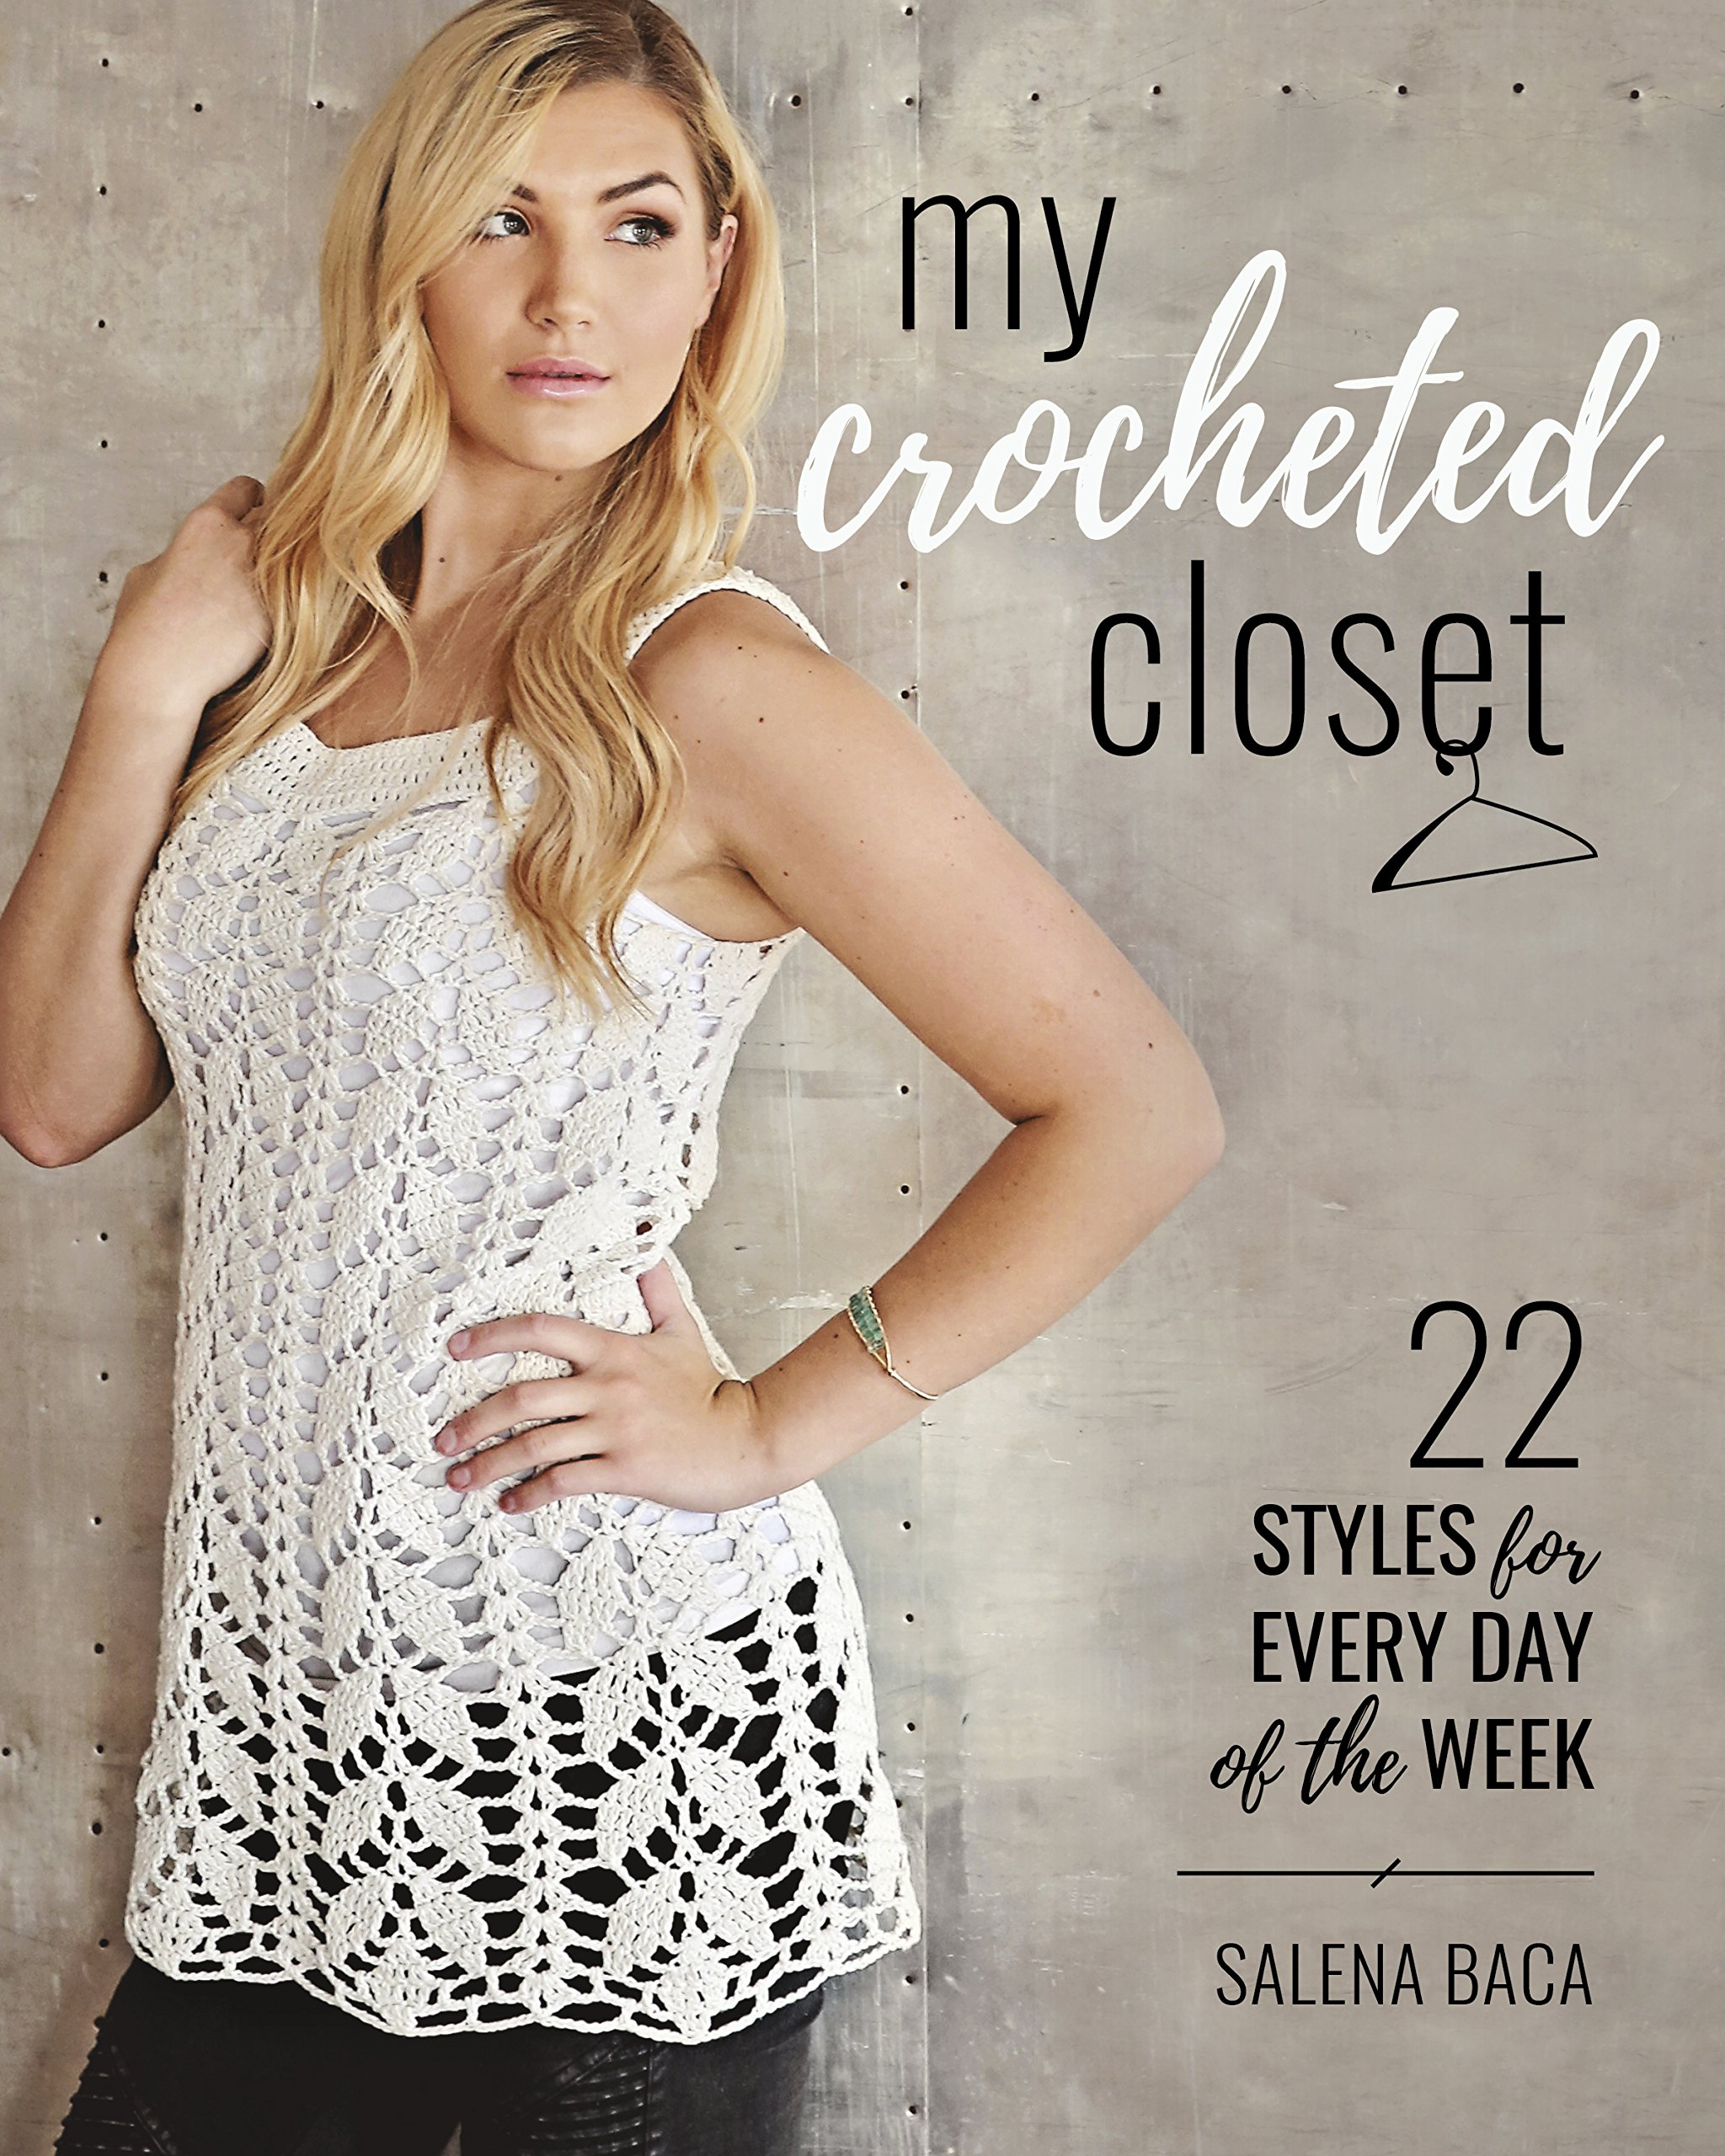 My Crocheted Closet: 22 Styles for Every Day of the Week: Salena Baca:  9780811718066: Amazon.com: Books